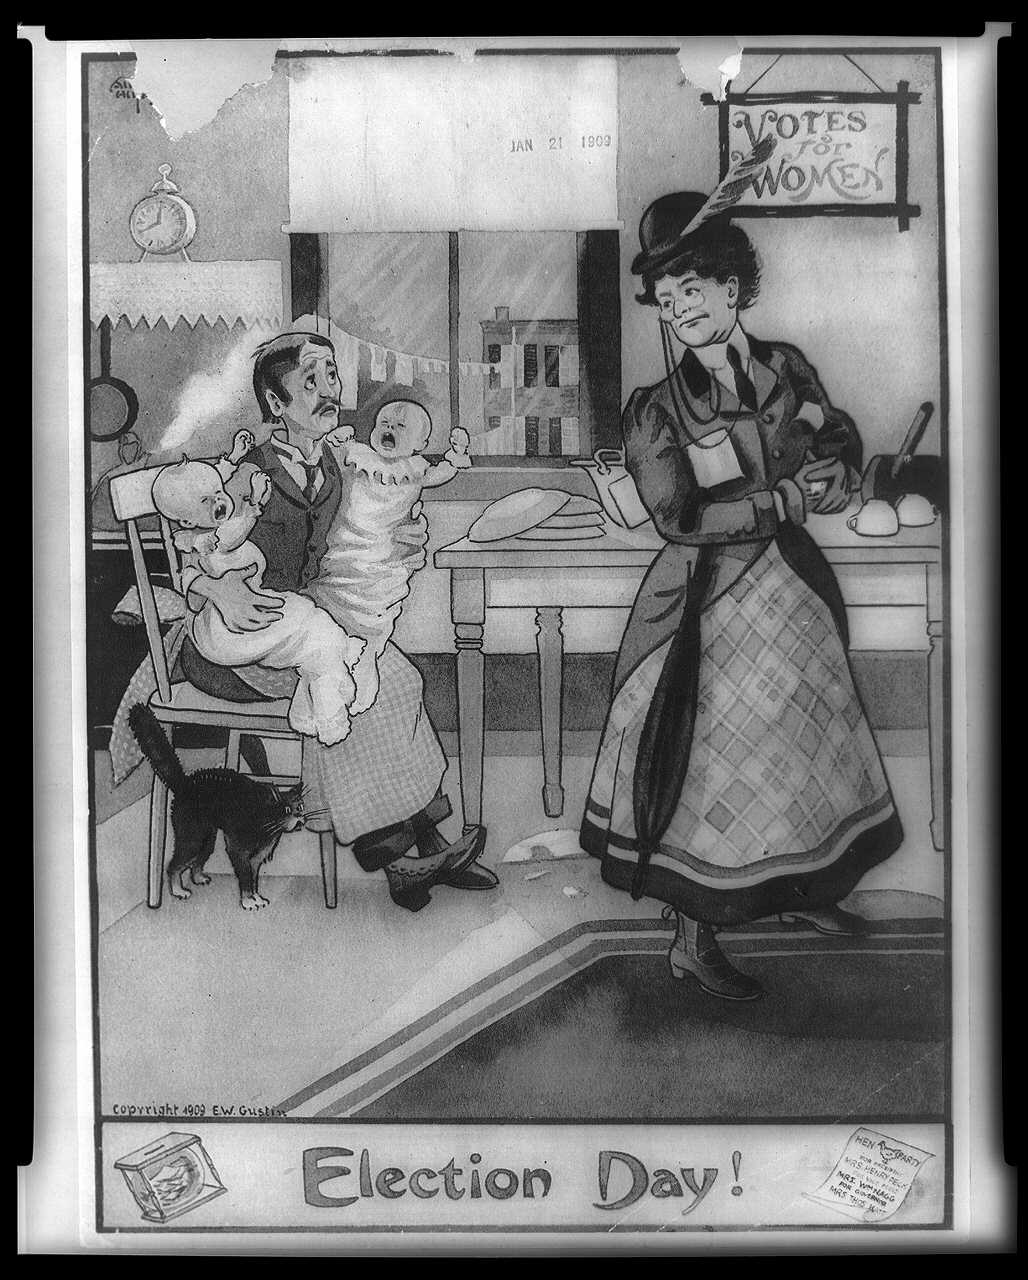 anti suffrage arkansas women s suffrage centennial project election day political cartoon 21 1909